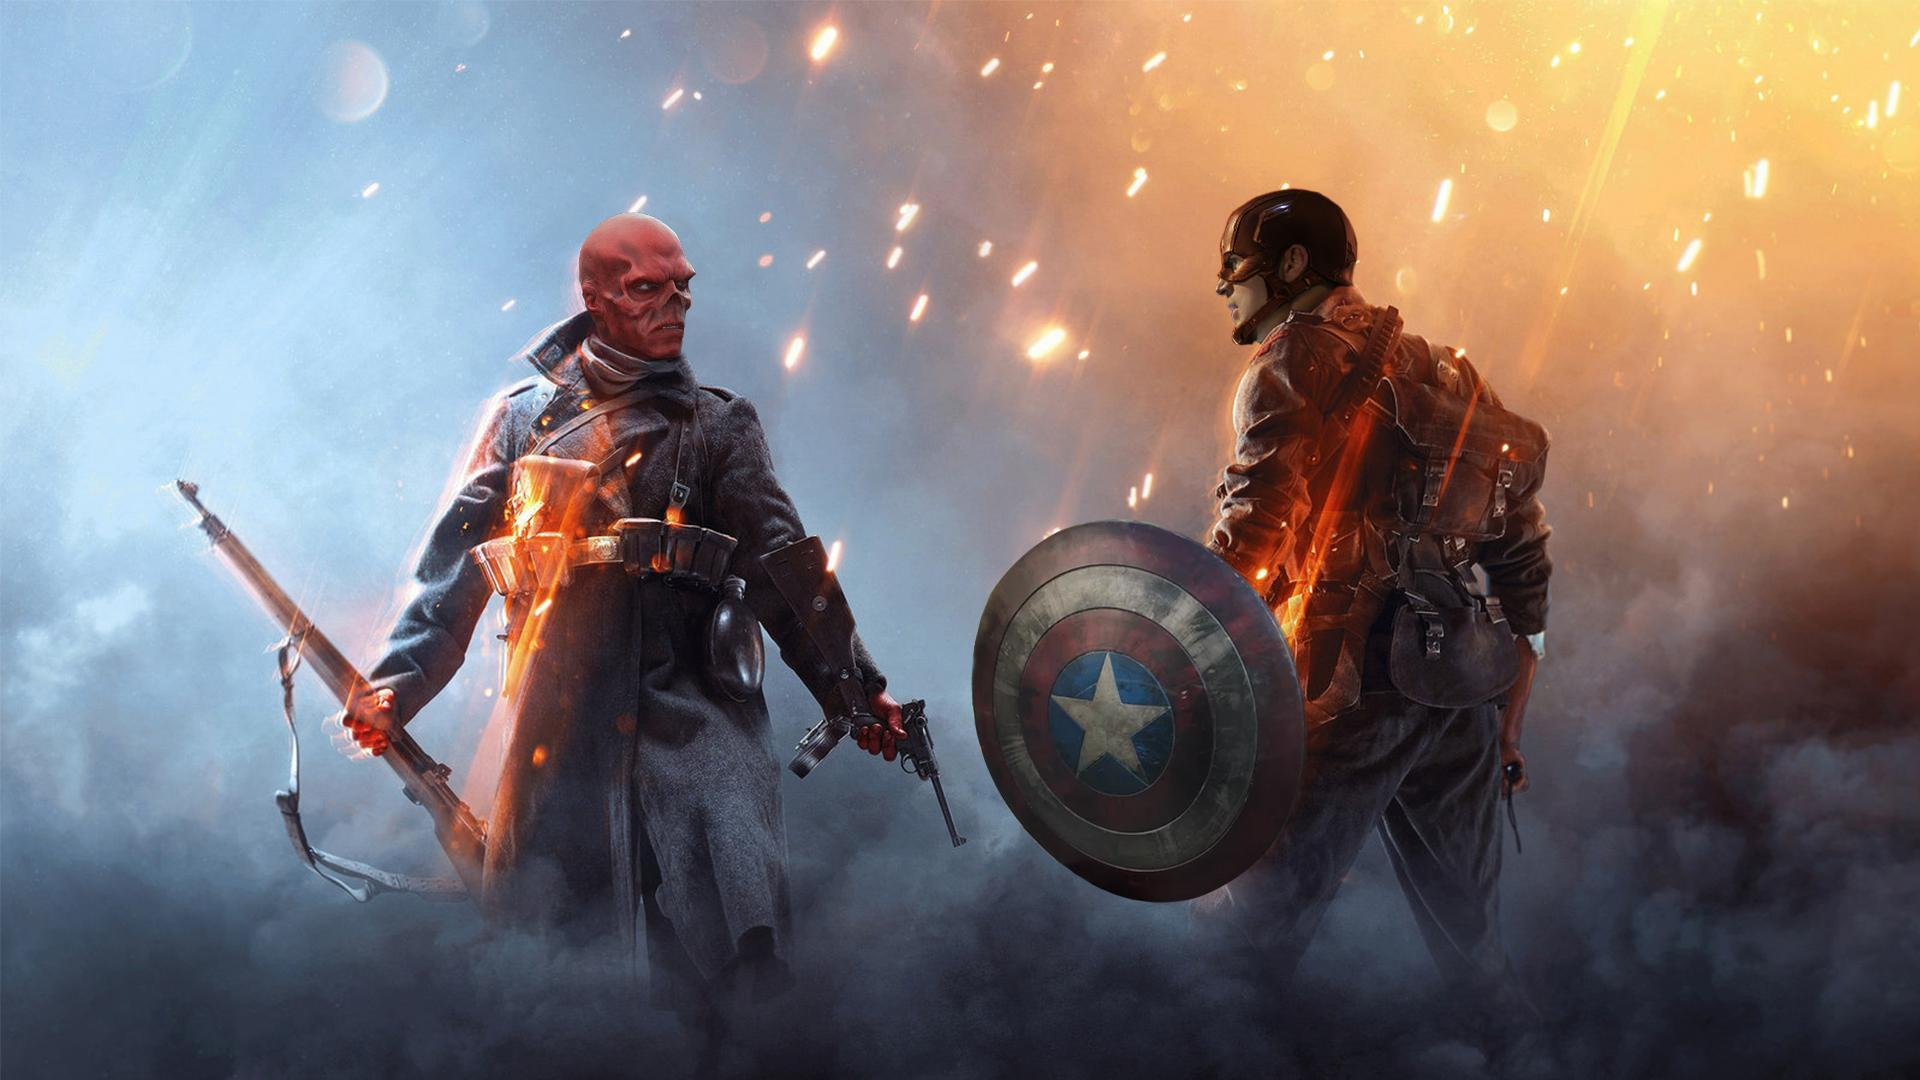 Captain America and red skull in battle field one : marvelstudios